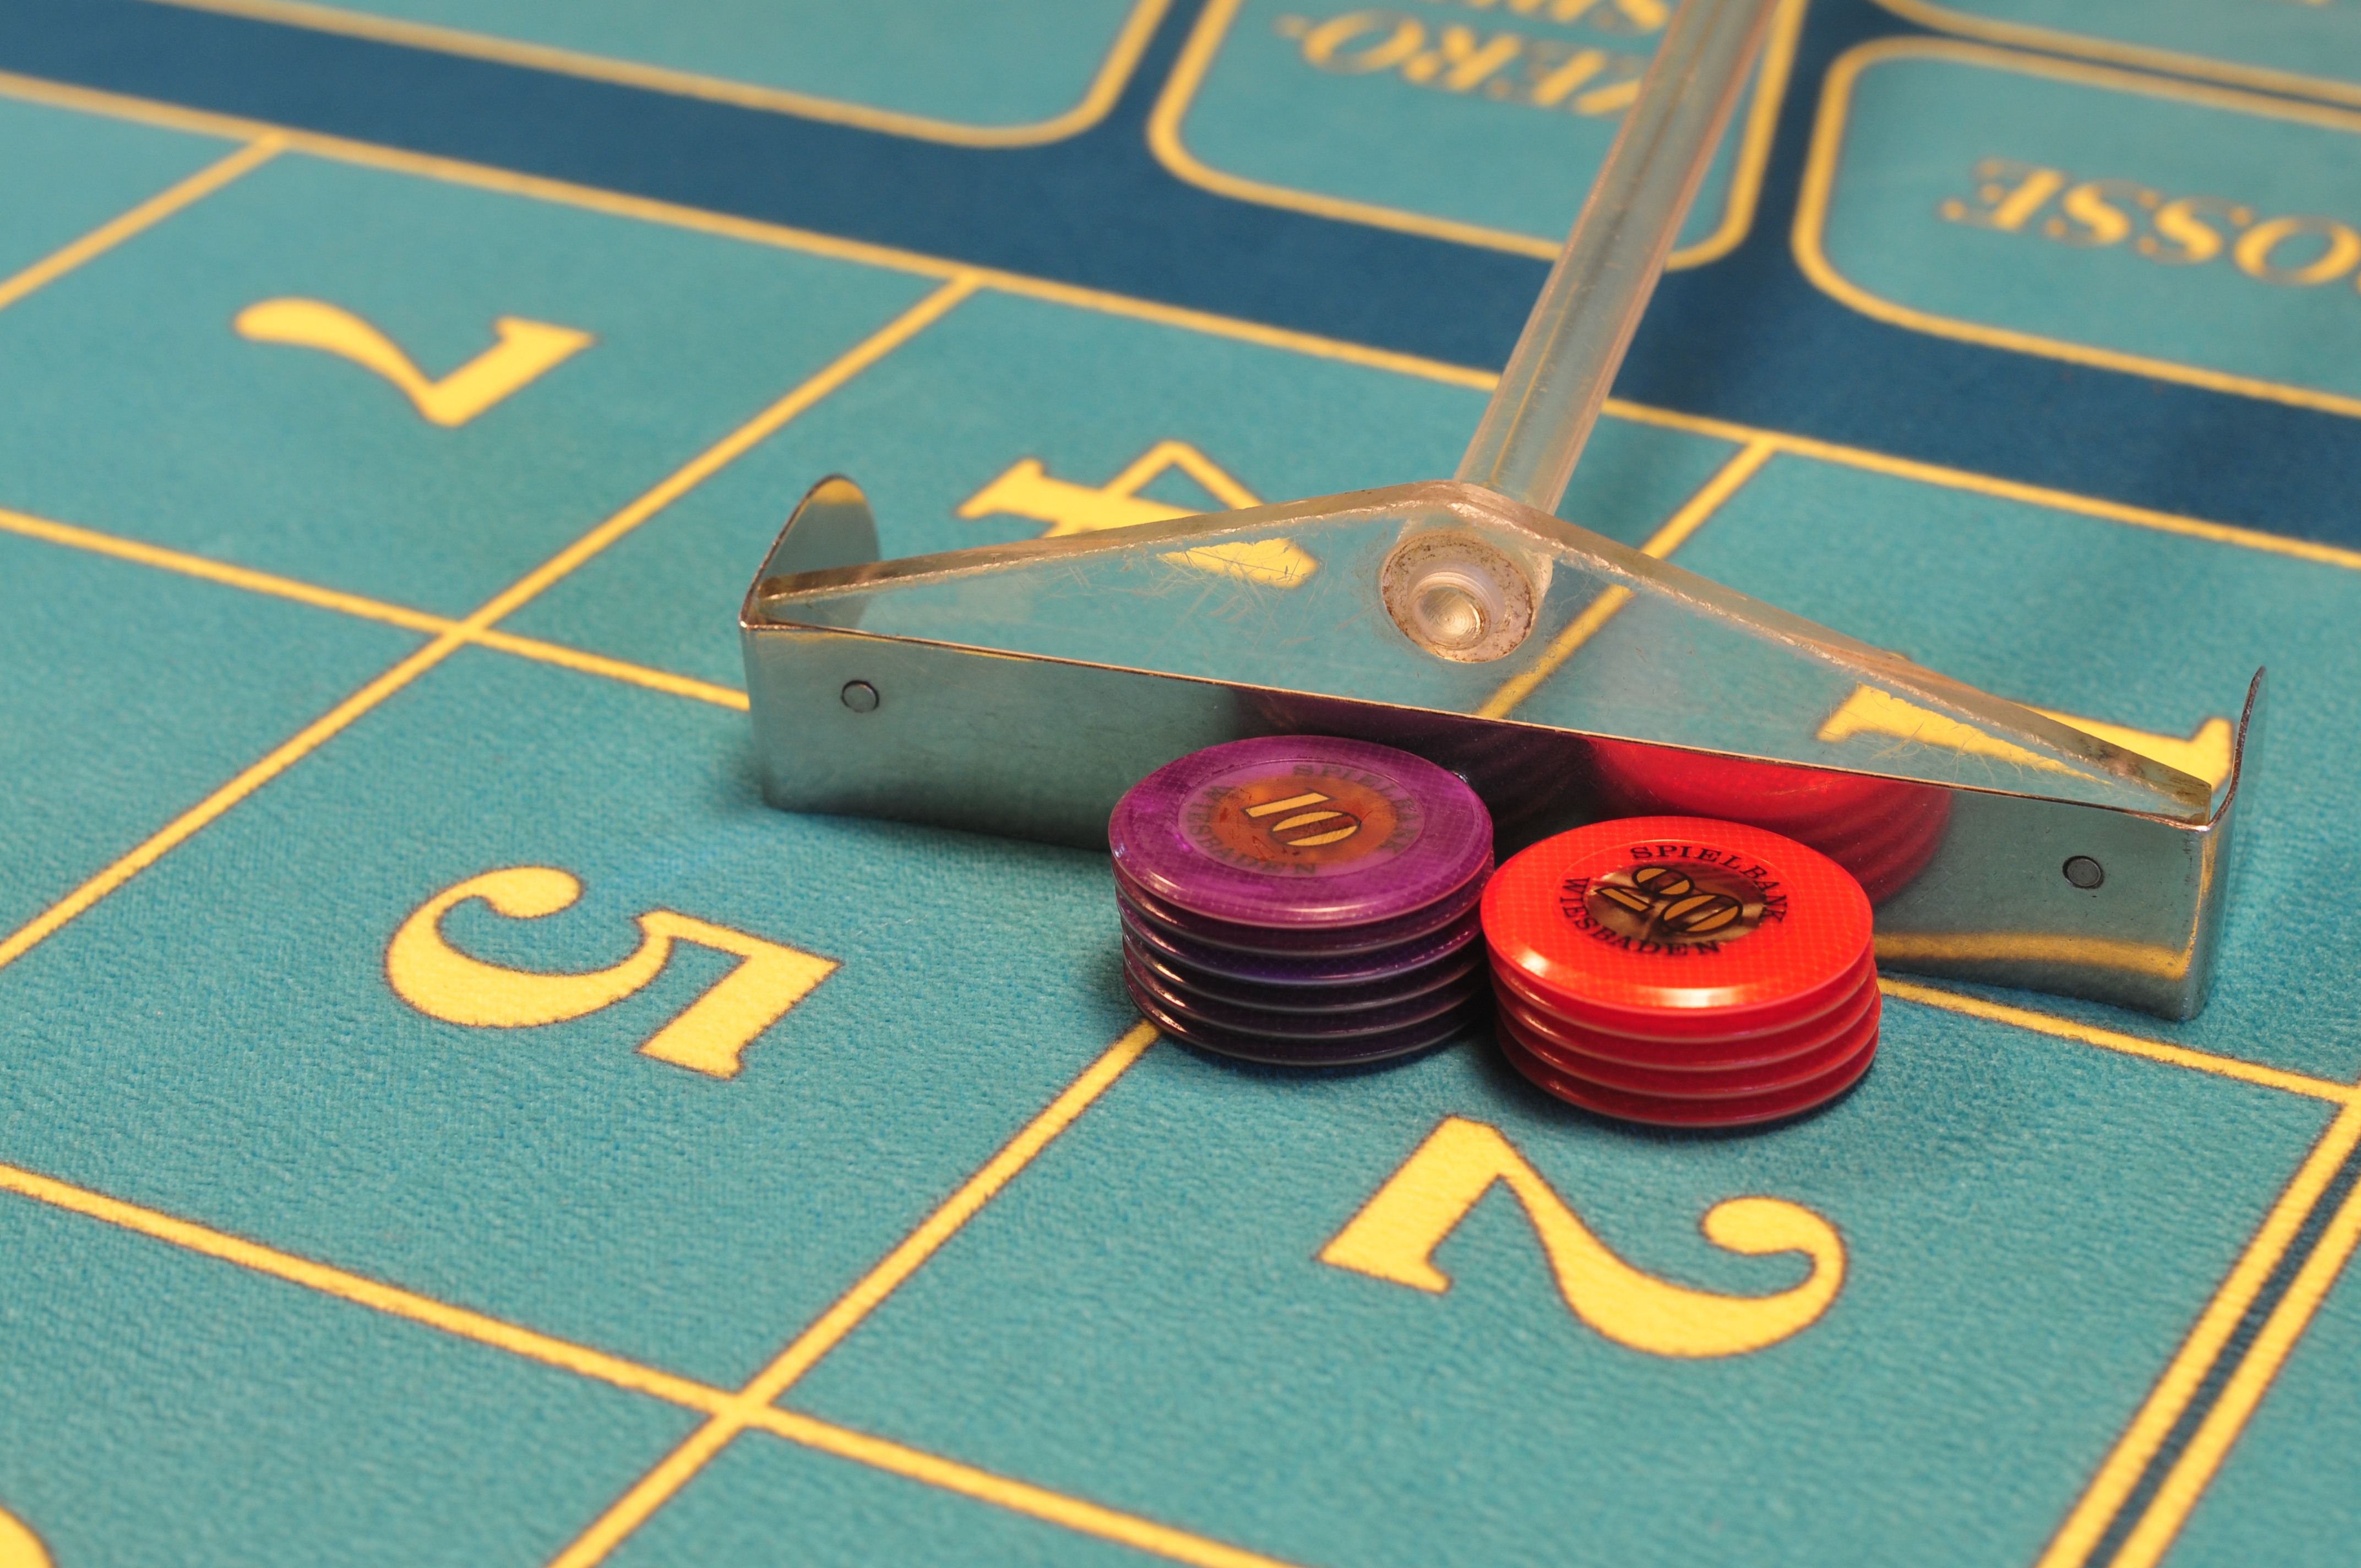 Roulette francaise wiki